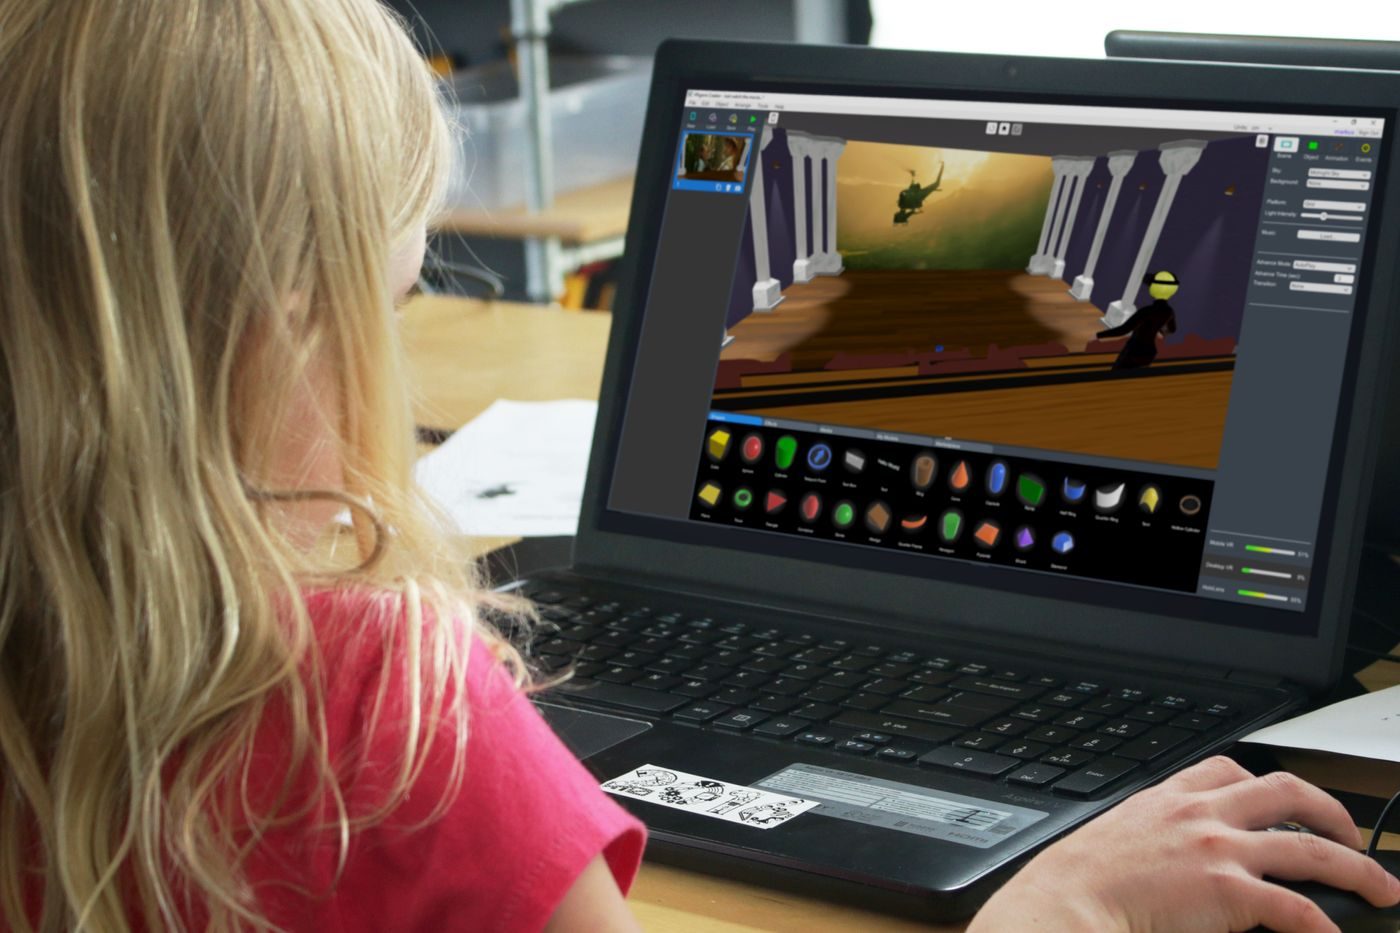 A child using the Builder on a laptop